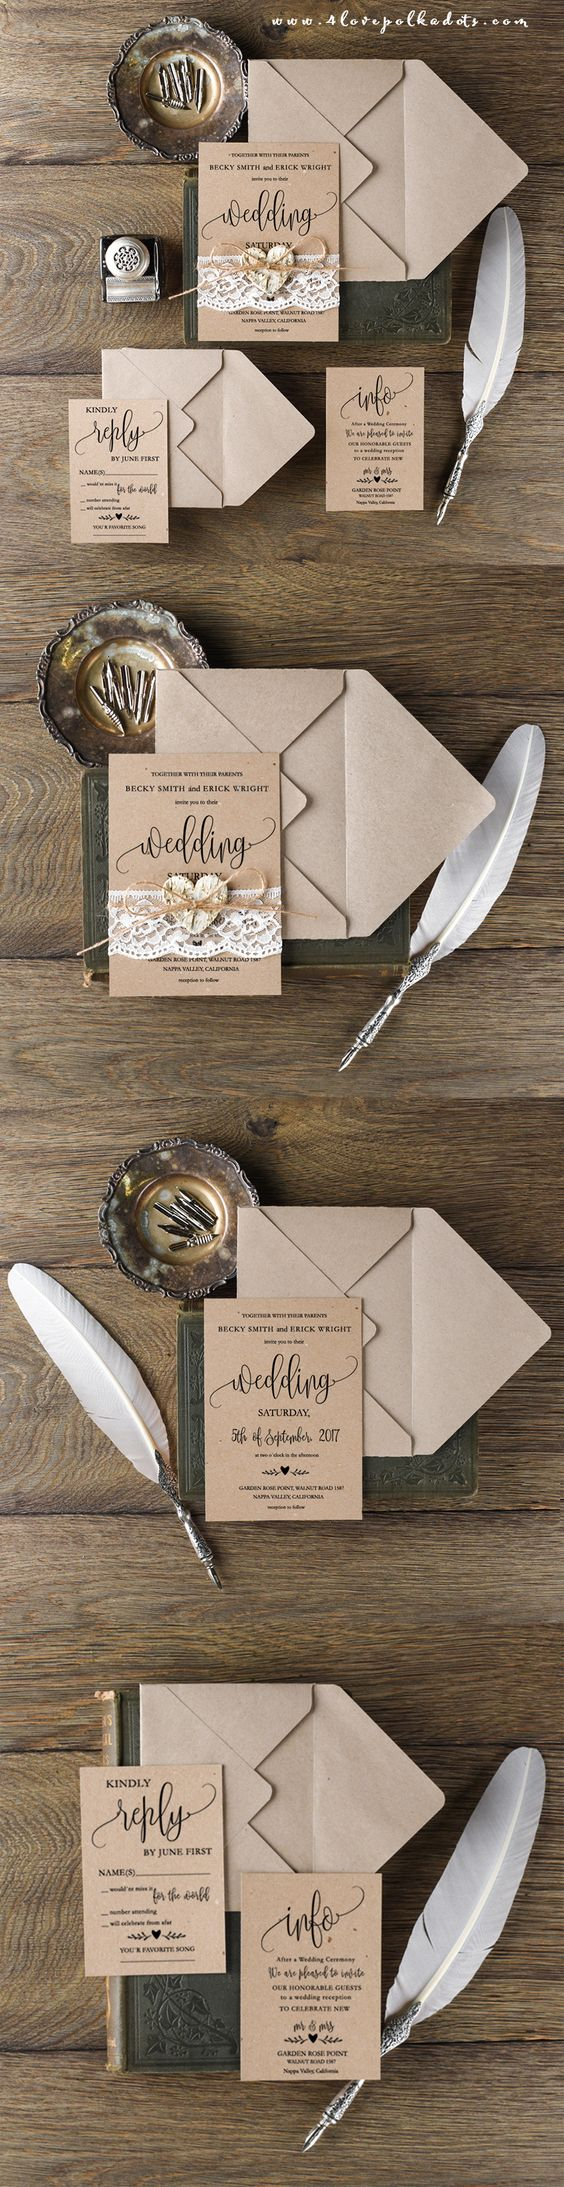 Rustic Wedding Invitation With Real Lace Birch Bark Heart